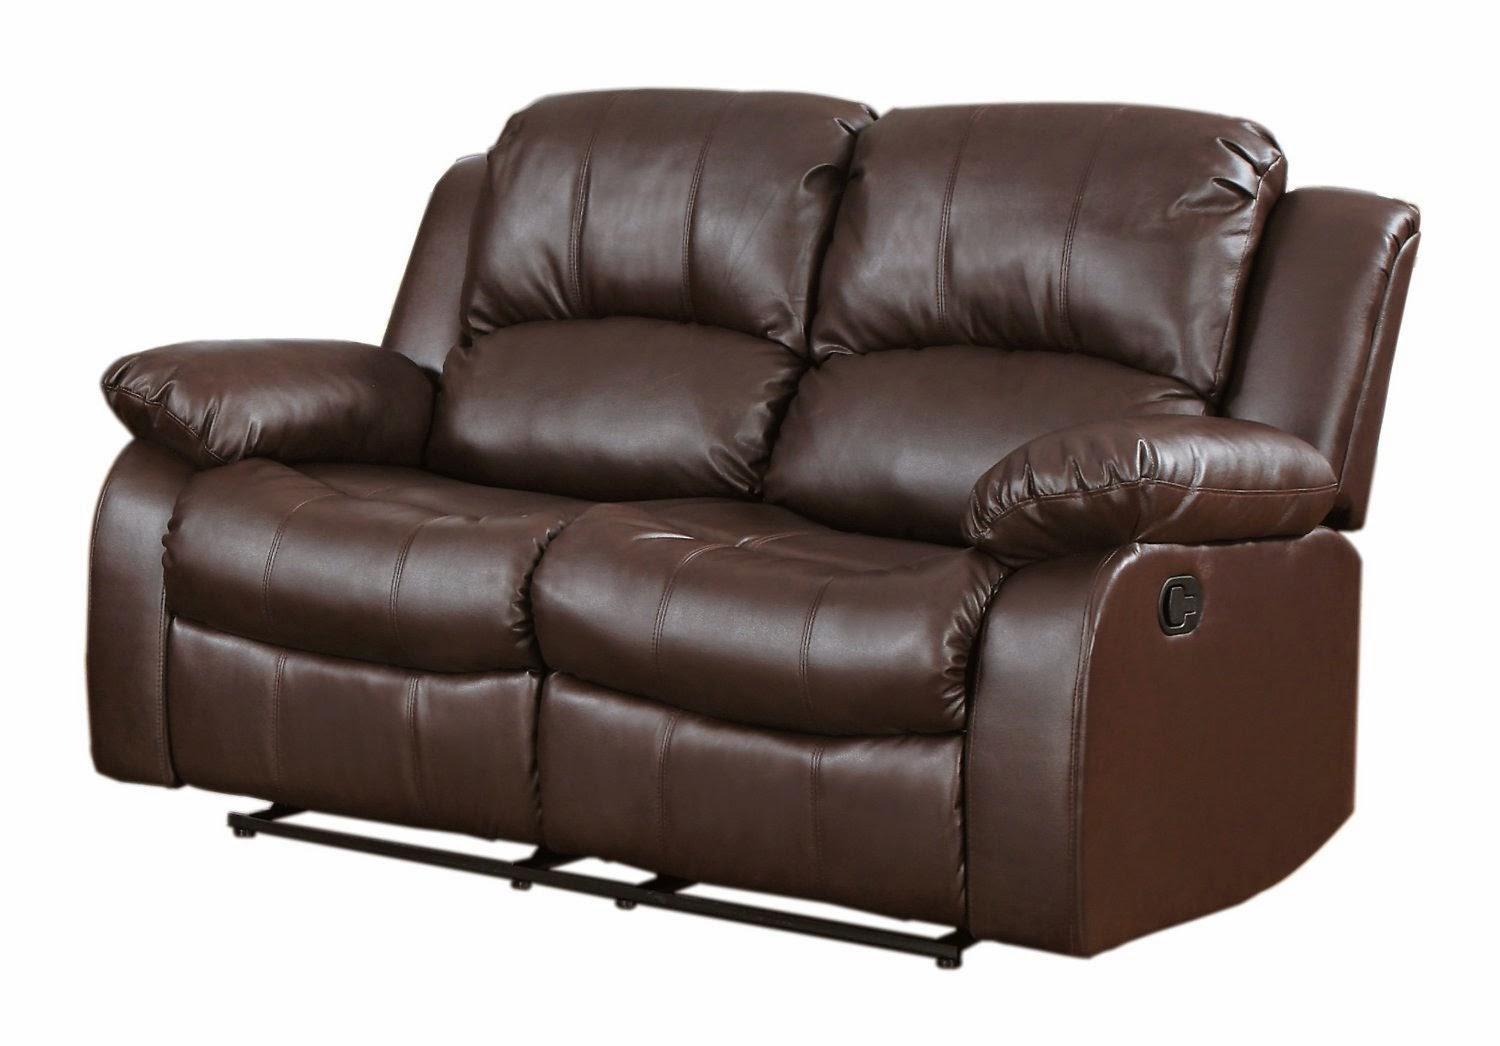 2 Seat Reclining Leather Sofa  sc 1 st  Best Leather Reclining Sofa Brands Reviews - blogger : 2 seat reclining leather sofa - islam-shia.org